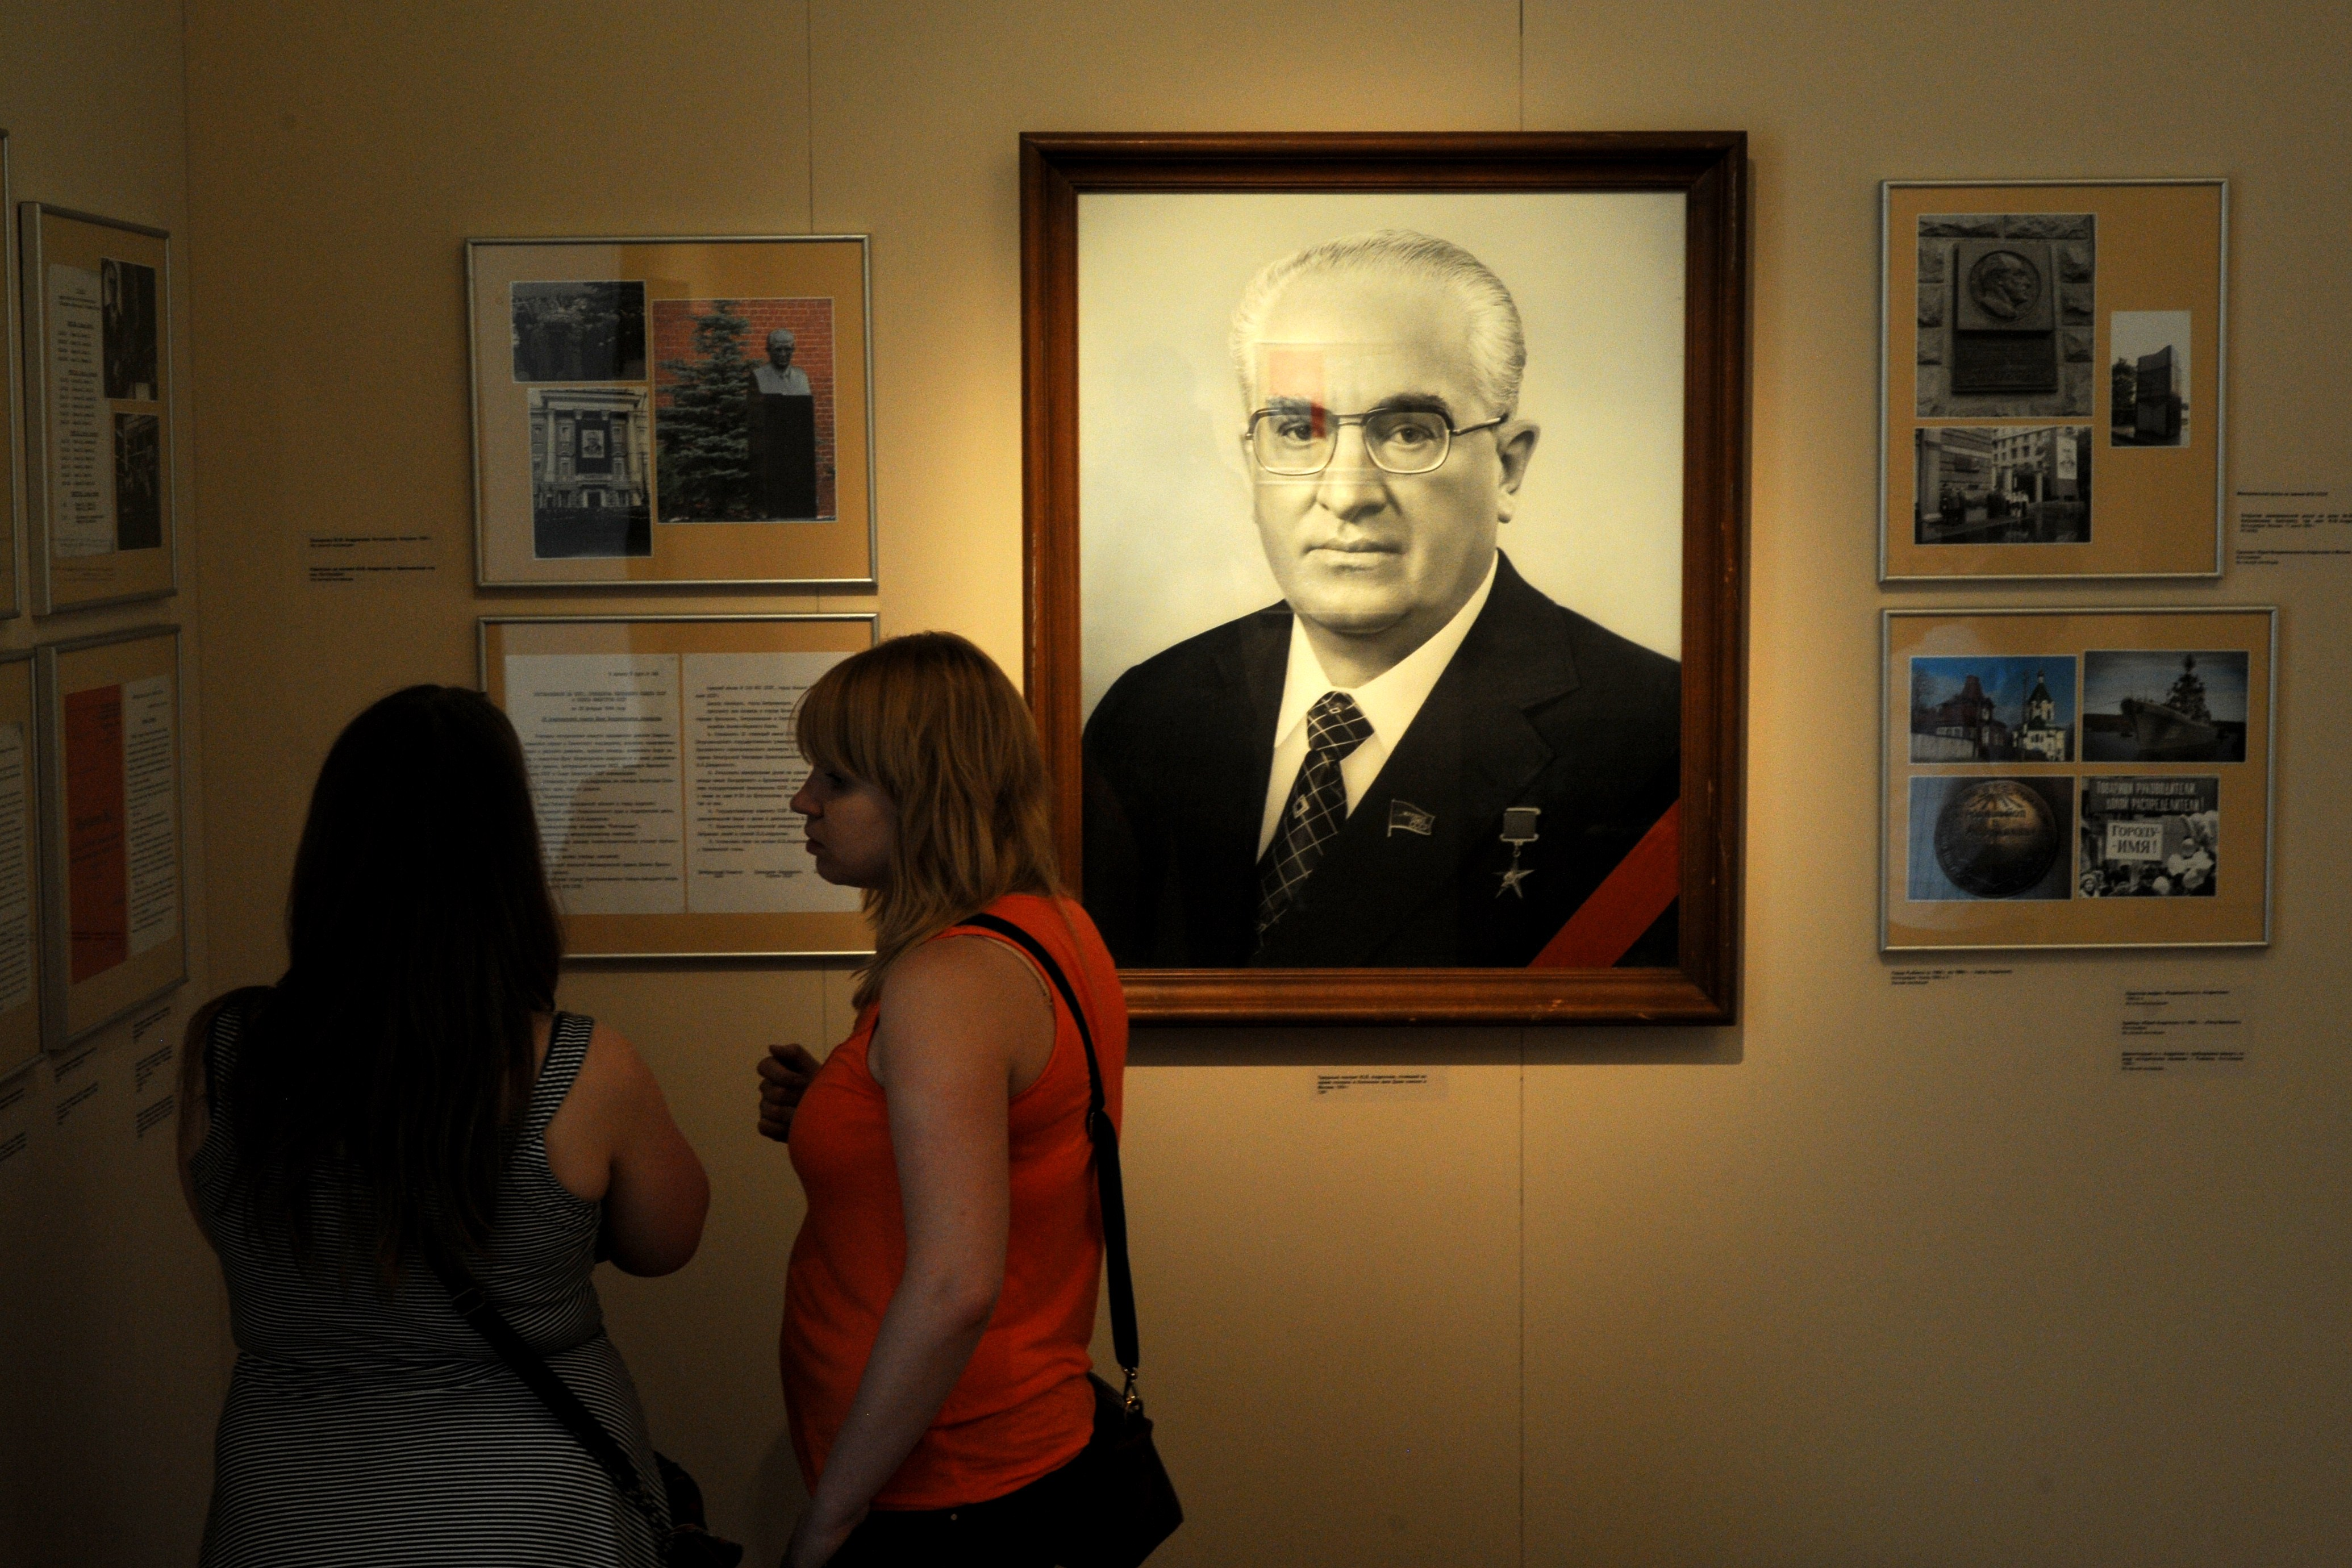 Visitors view an exhibition dedicated to the former Communist leader and KGB head, Yuri Andropov, in Moscow, on July 6, 2014. Nostalgic about the might of vanished Soviet empire, Russia marked the 100th anniversary of Andropov's birth with exhibitions and television films glorifying the Soviet leader who was in charge when his nation's military shot down KAL 007 in 1983.